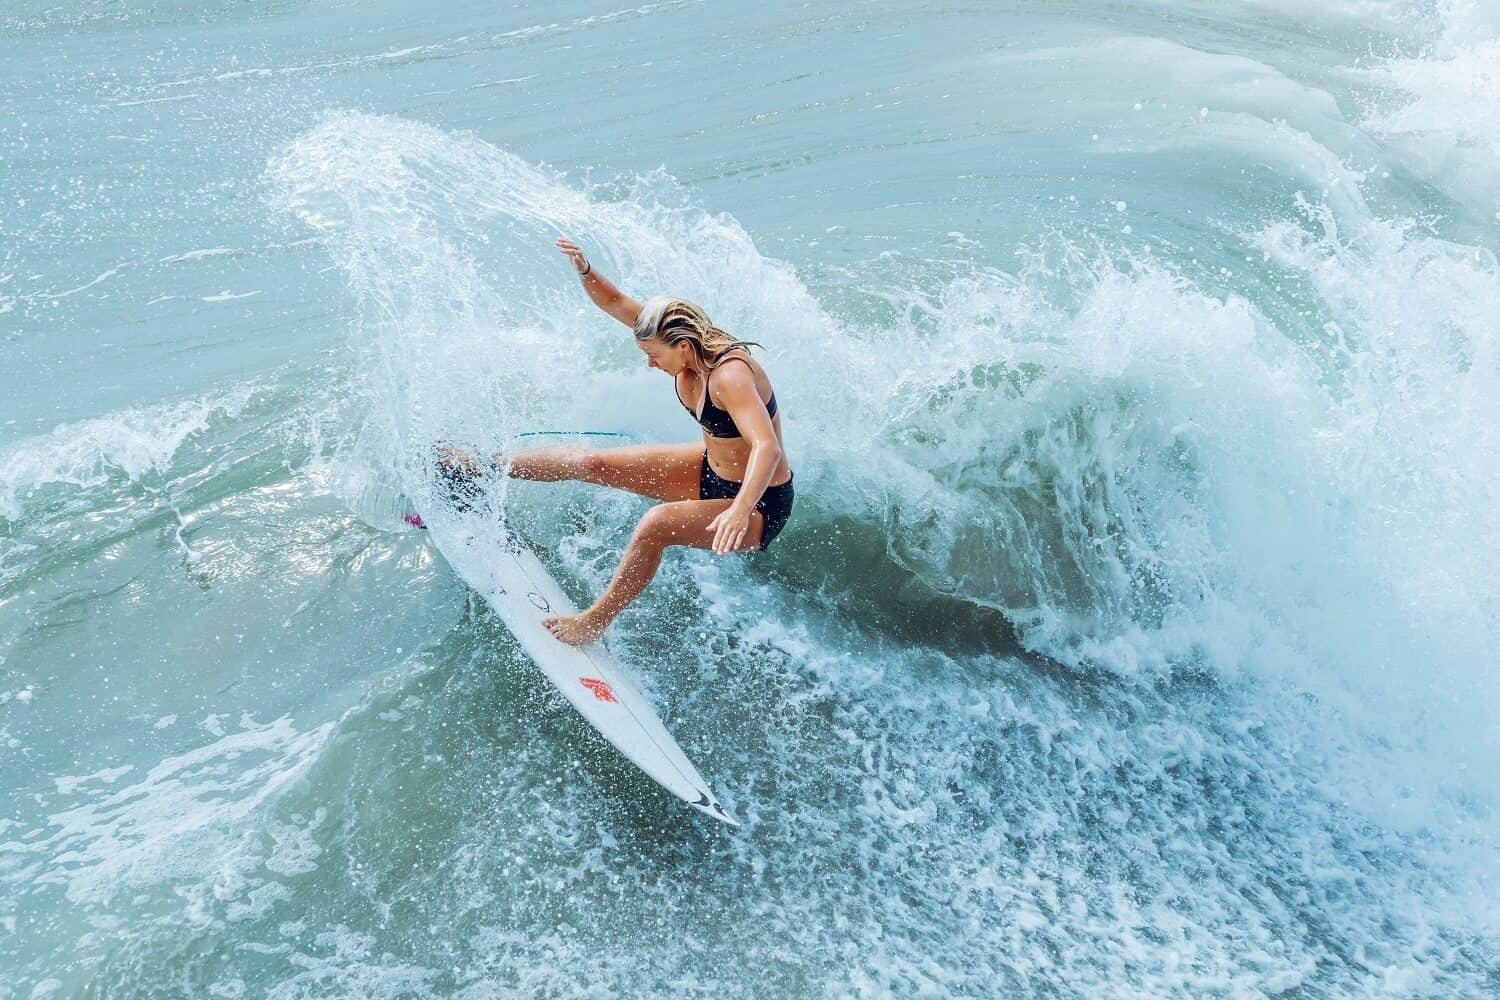 Surfing Girl Waves